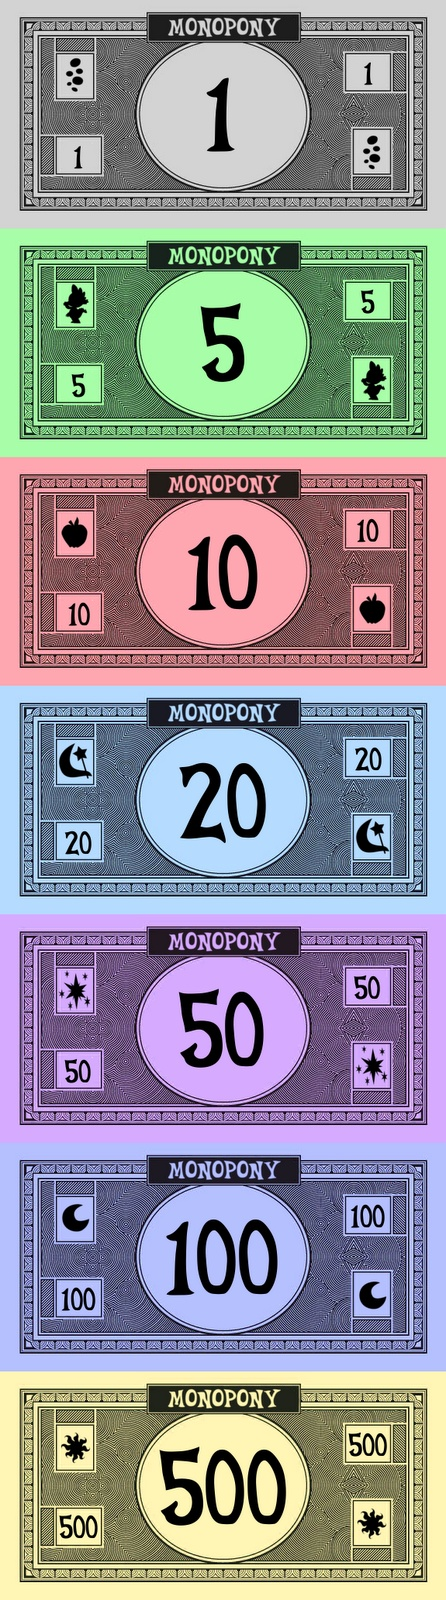 monopoly money templates - 18 best monopoly game images on pinterest